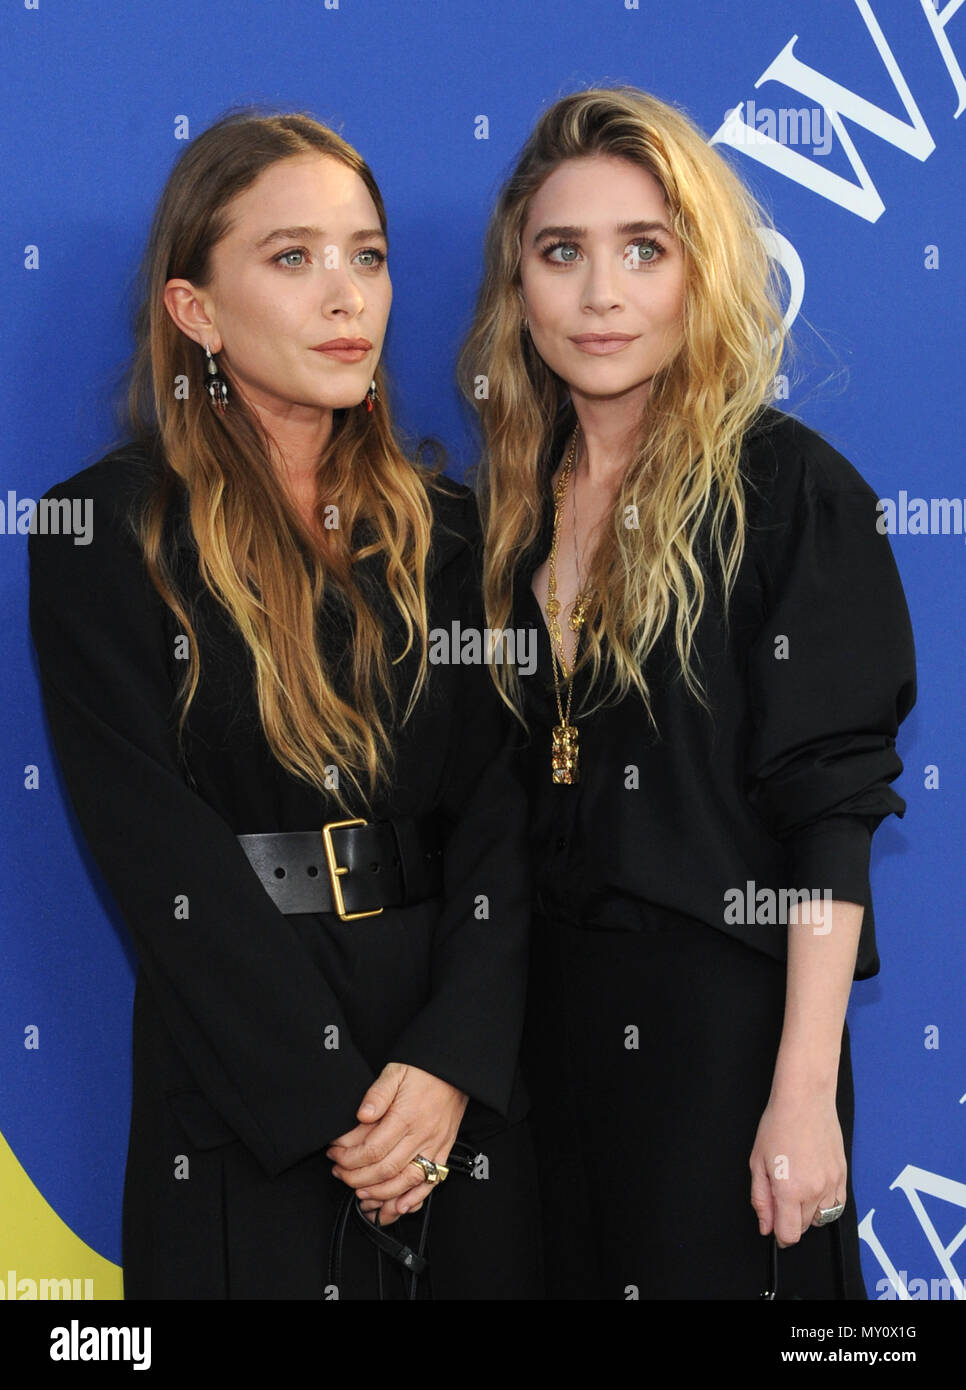 brooklyn ny usa 4th june 2018 marykate olsen and